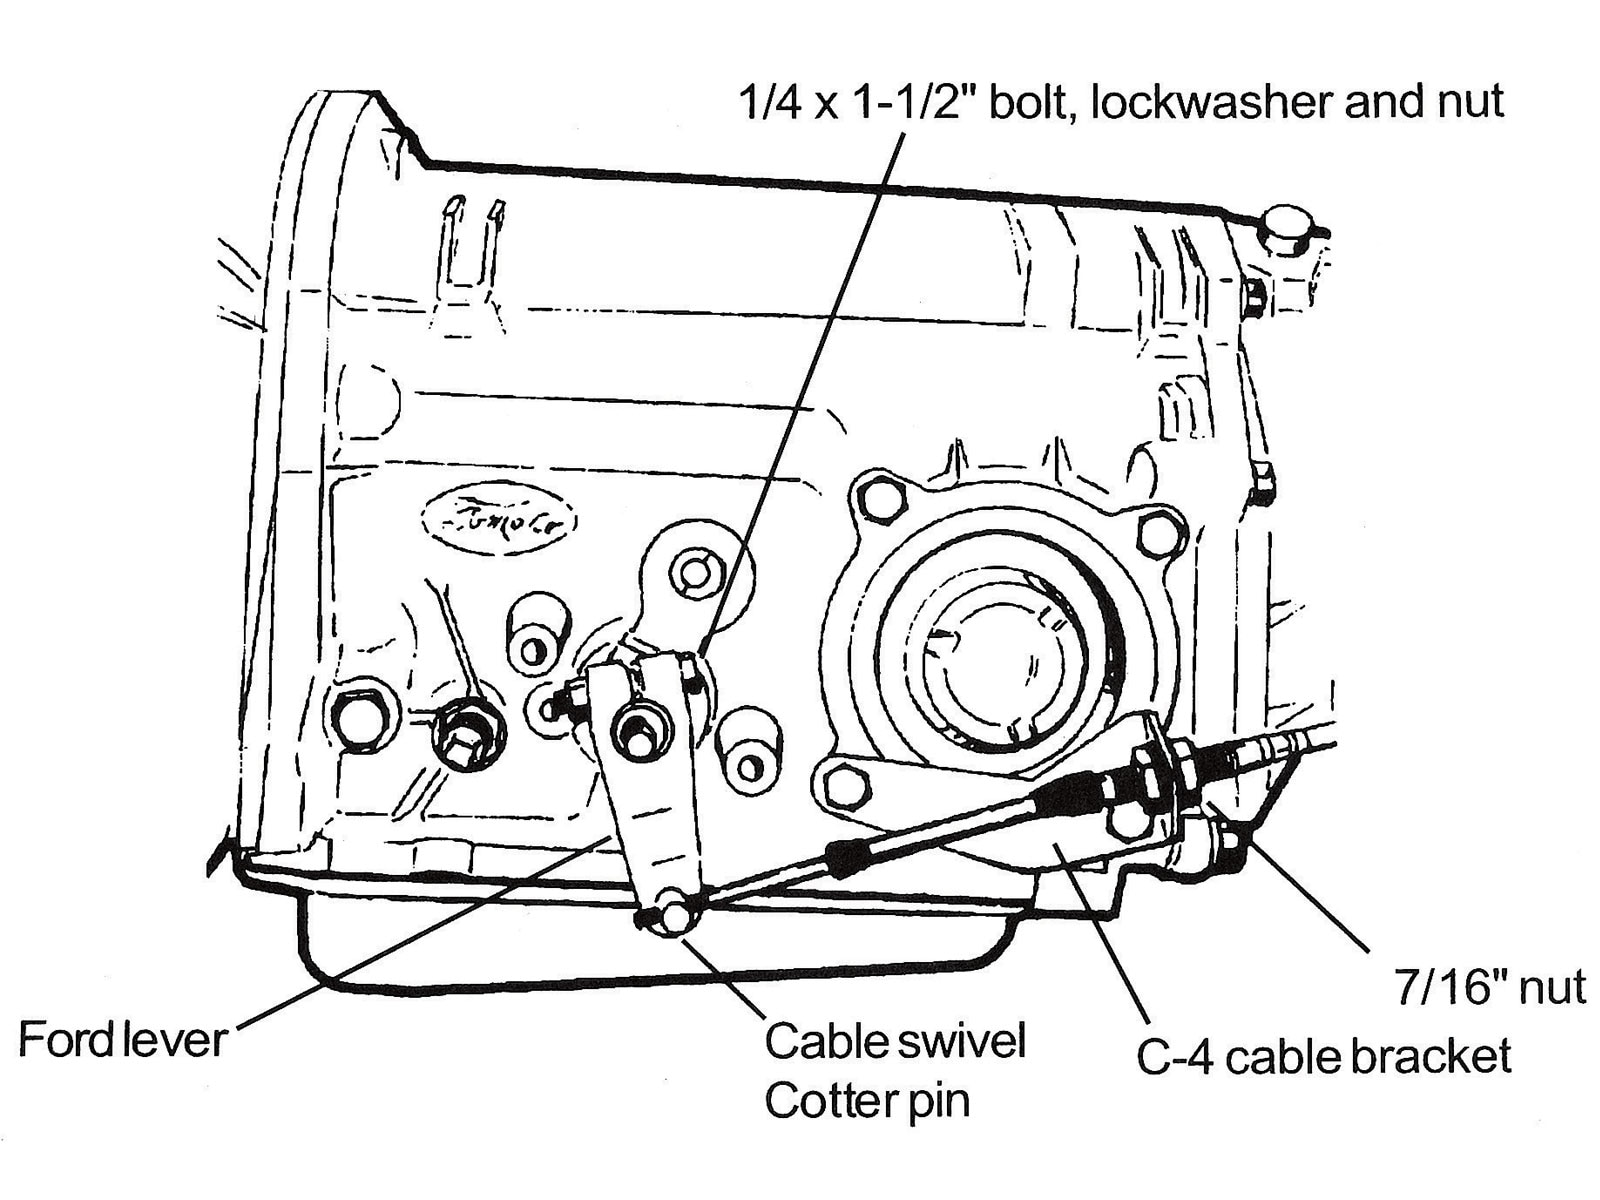 1967 Ford Fairlane 500 Hardtop Diagram